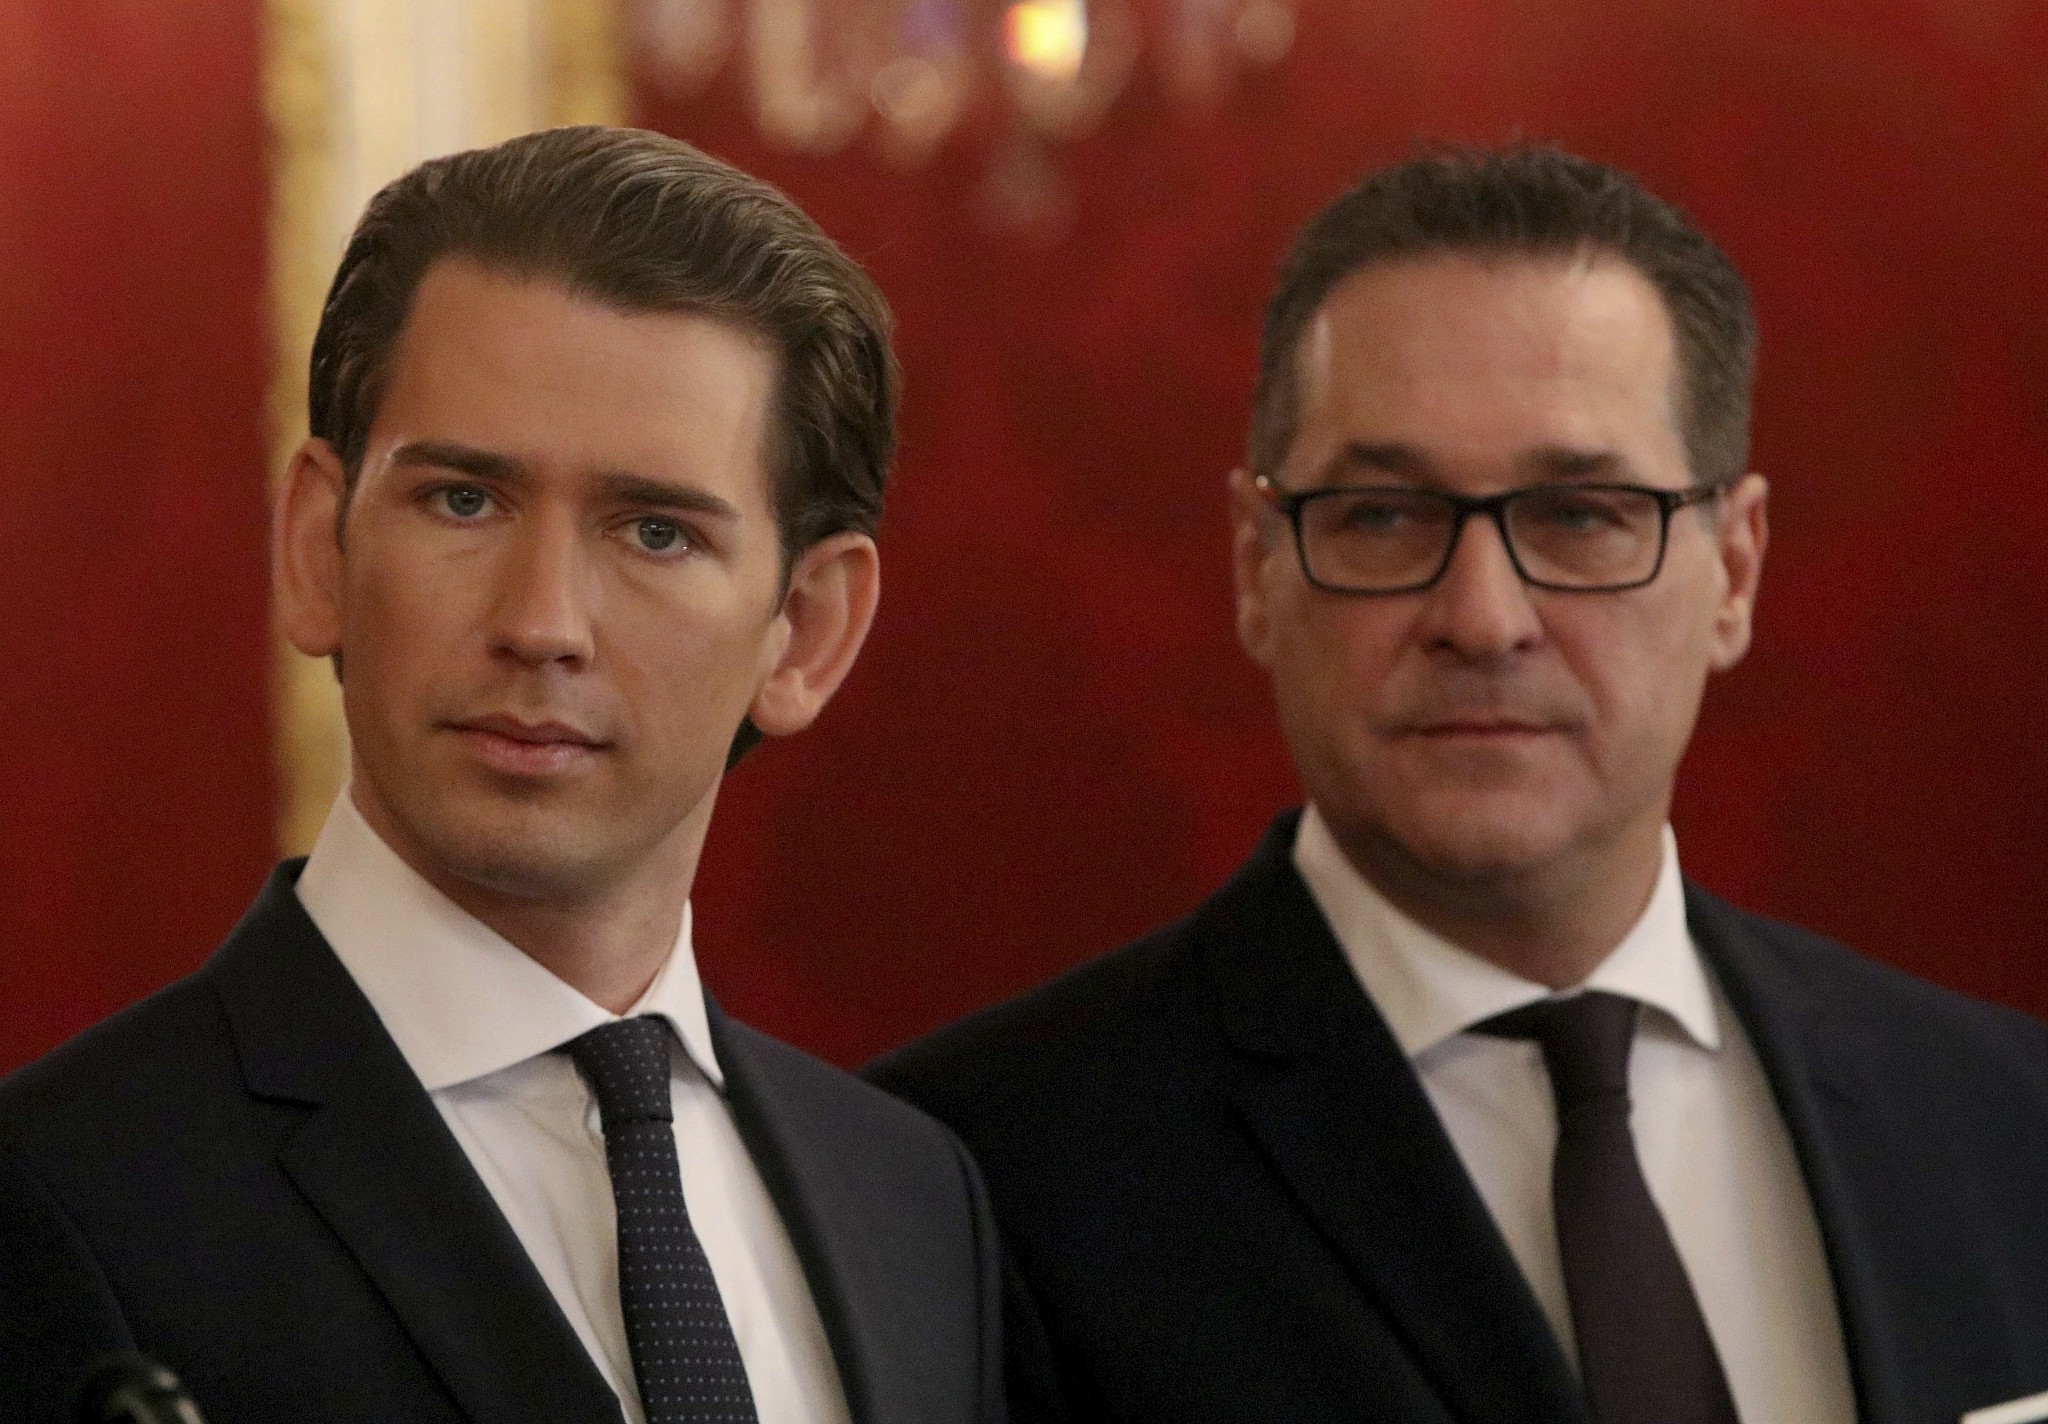 Austria swears in Europe's youngest leader amid protests